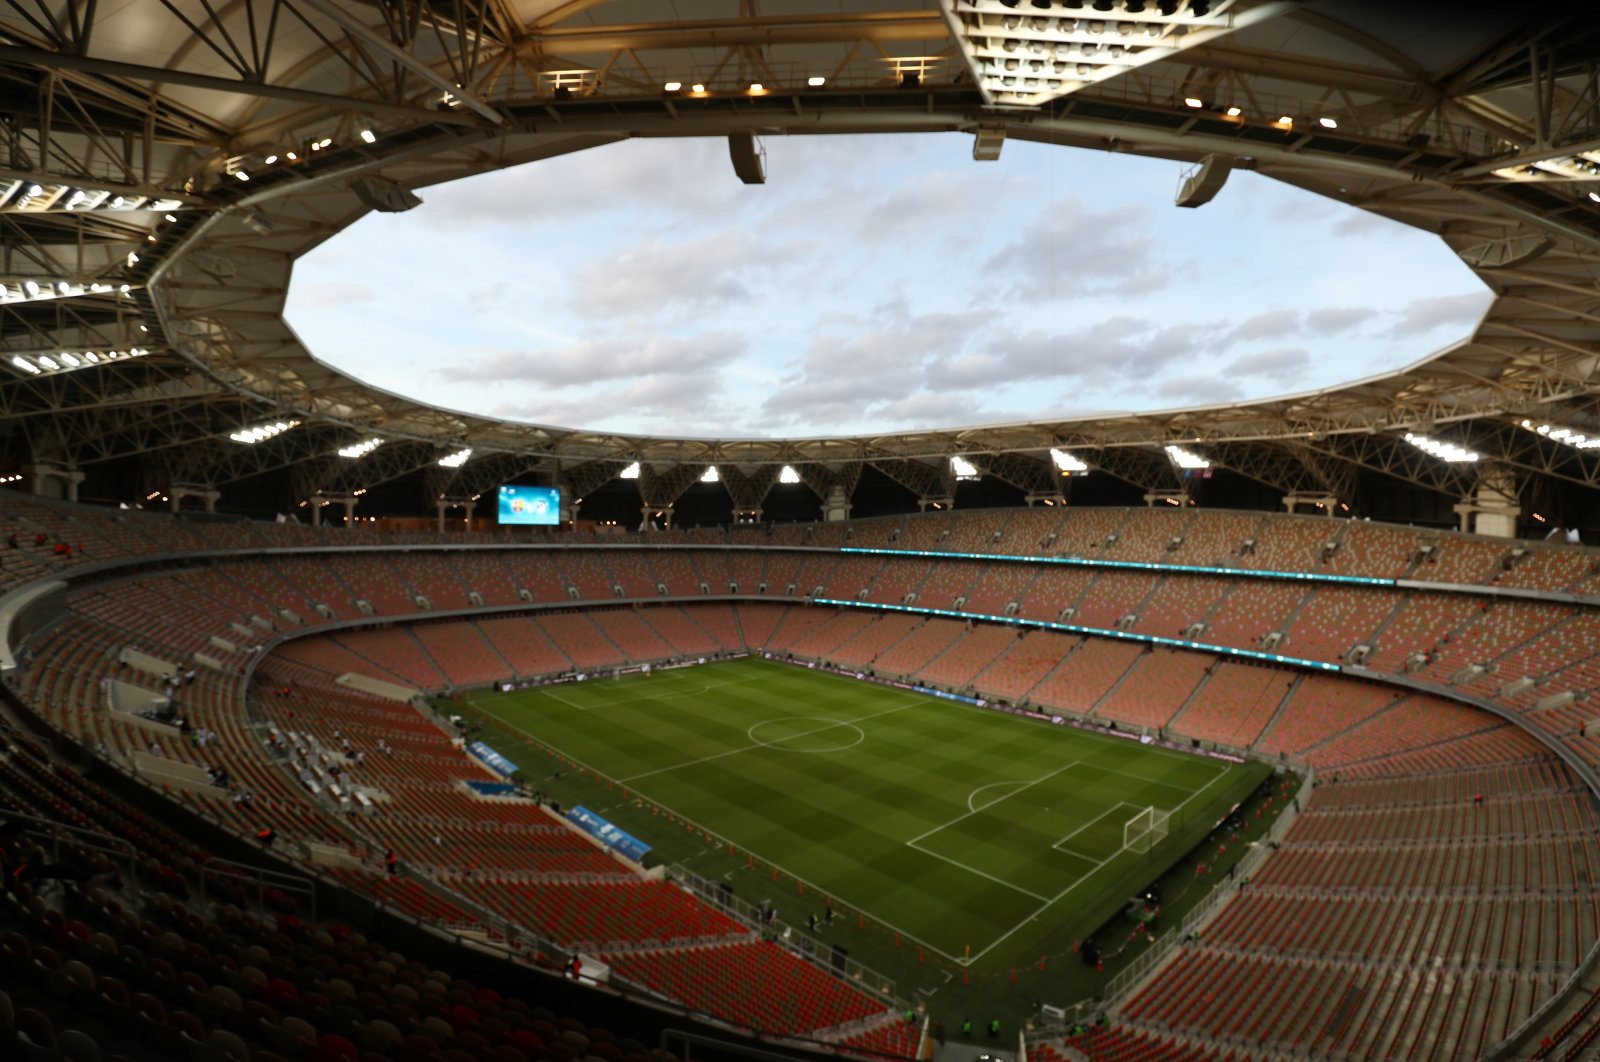 General view inside the King Abdullah Sports City Stadium, Jeddah, Saudi Arabia, Jan. 9, 2020. (Reuters Photo)